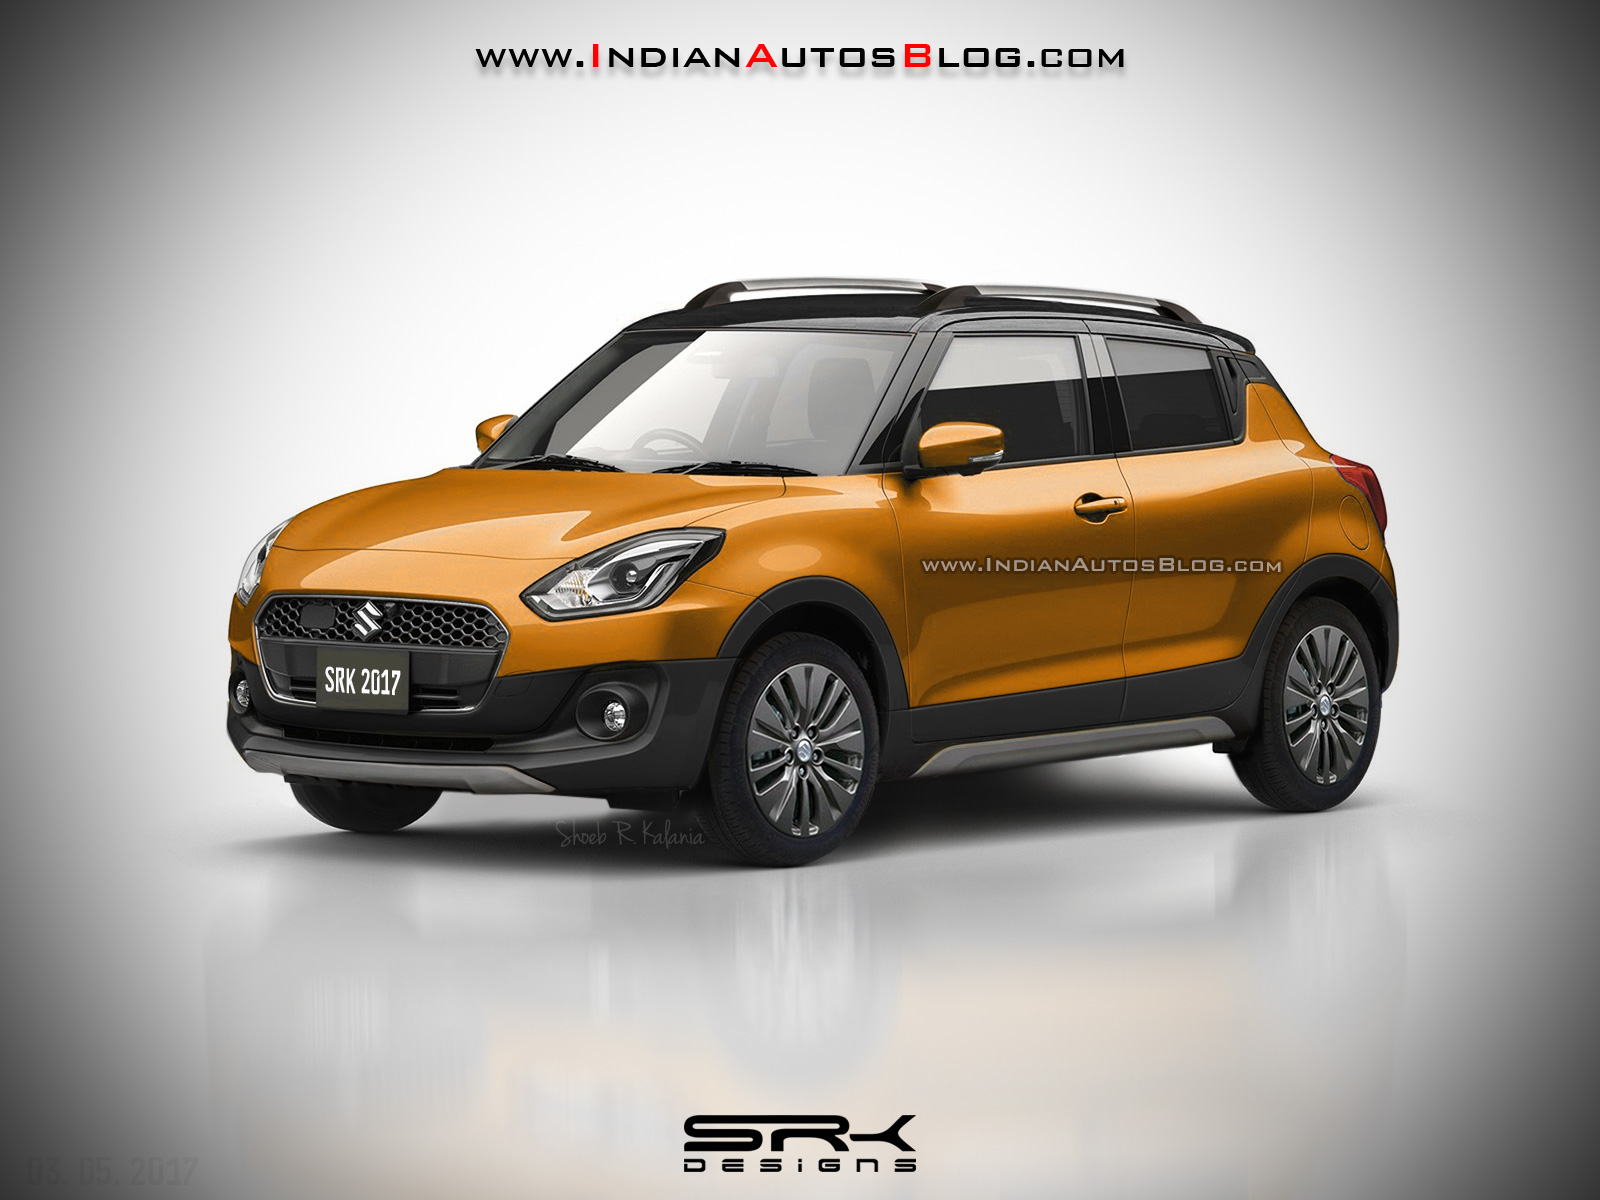 2017 Suzuki Swift Cross (Maruti Swift Cross) front three quarter Rendering